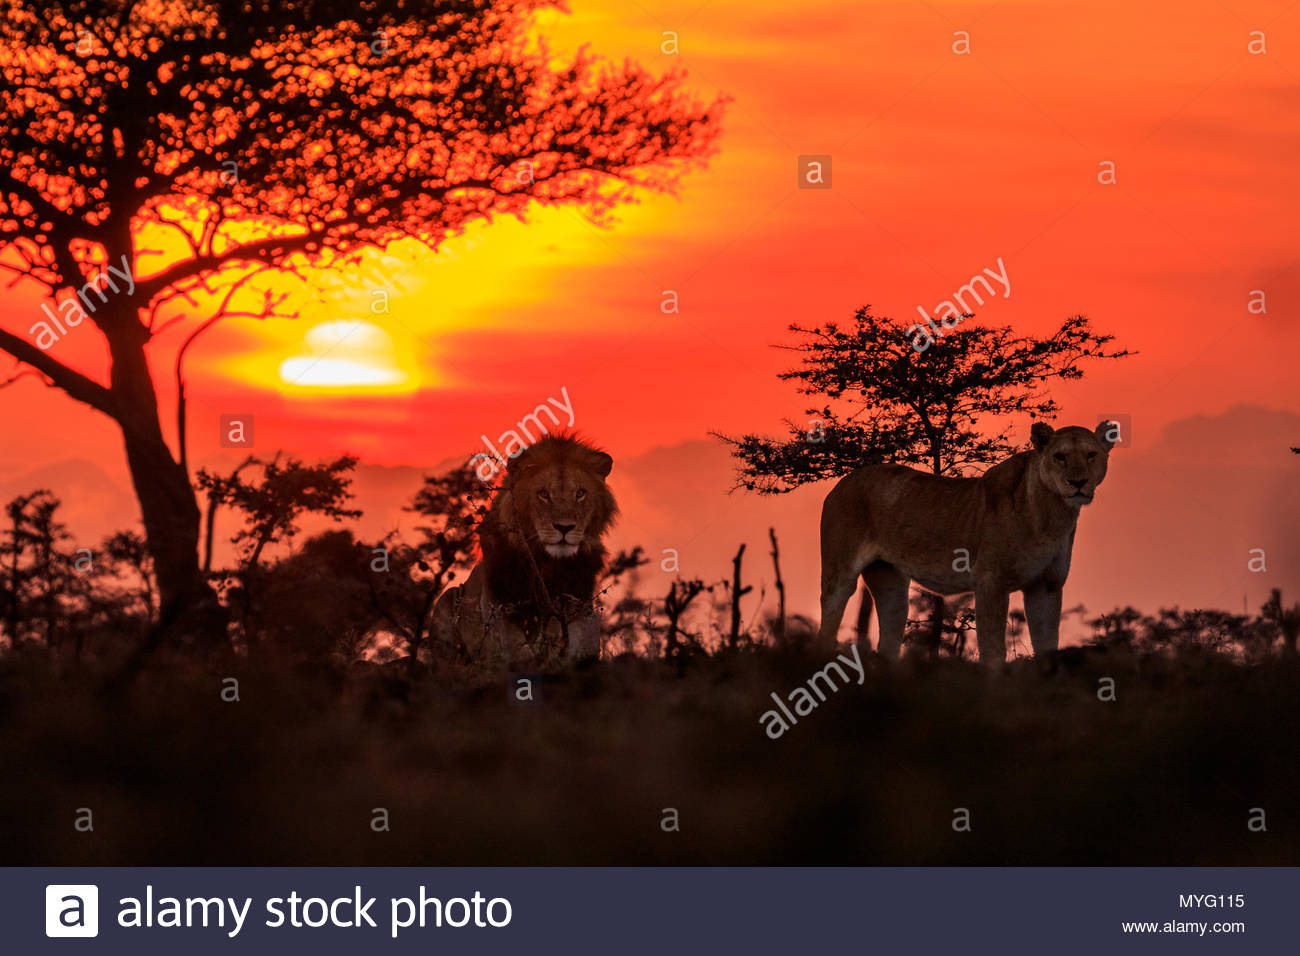 Male and female lions at sunrise. - Stock Image